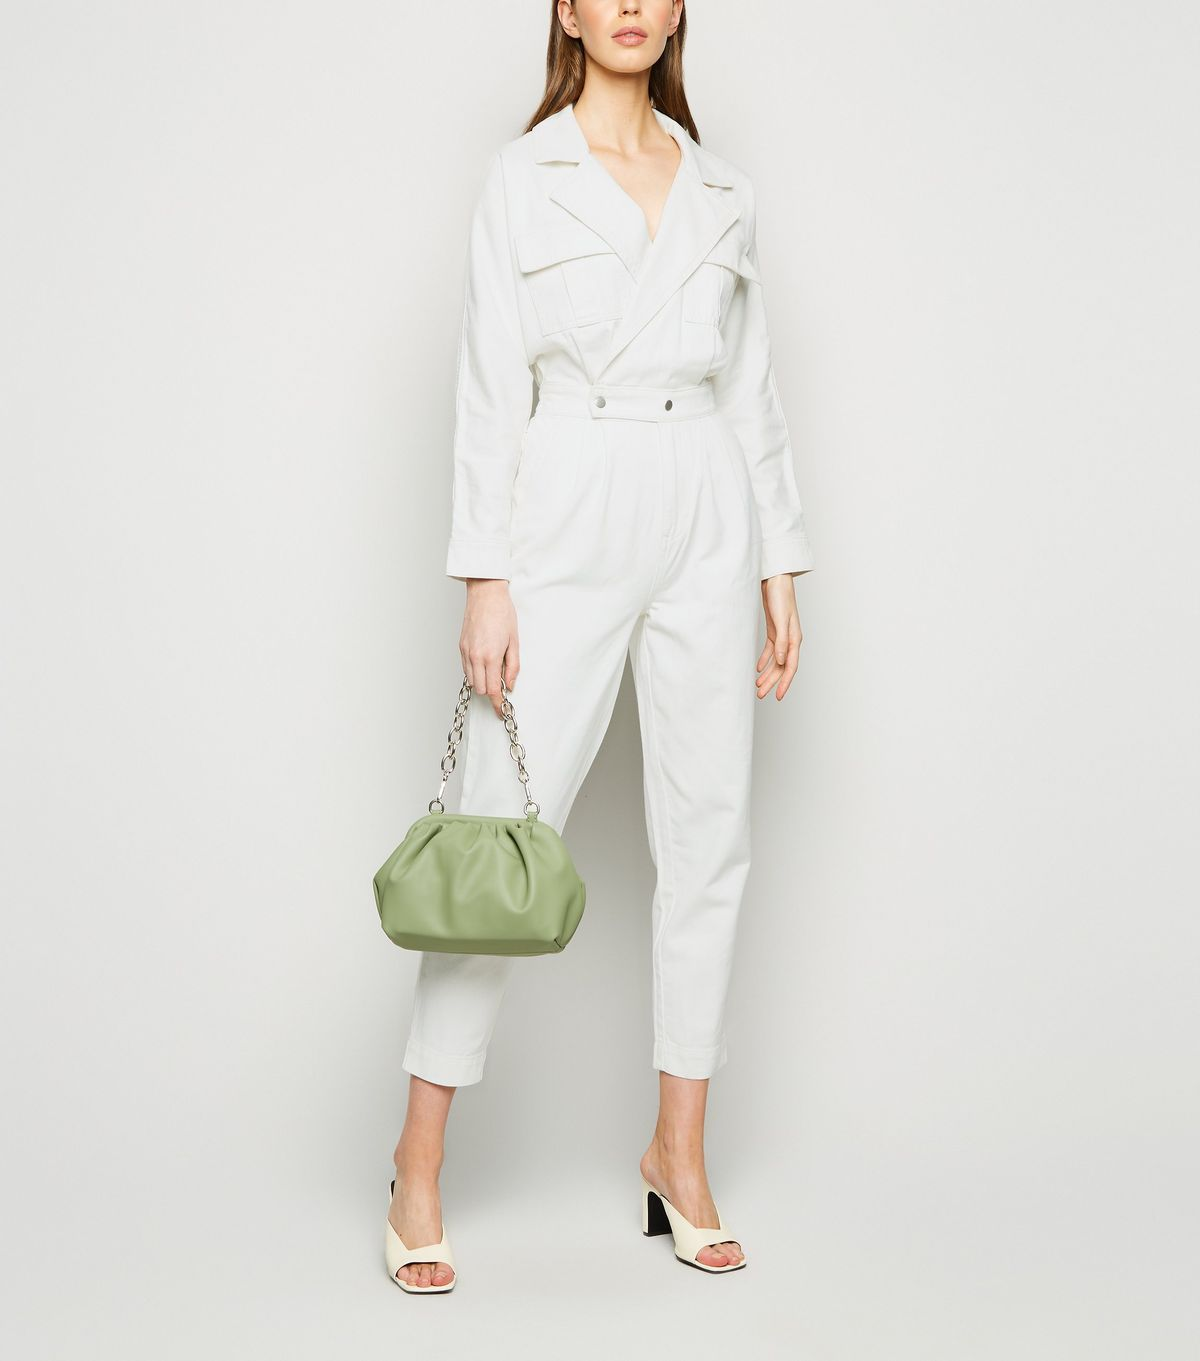 ...when you can get a similar one from Newlook.com and save £26